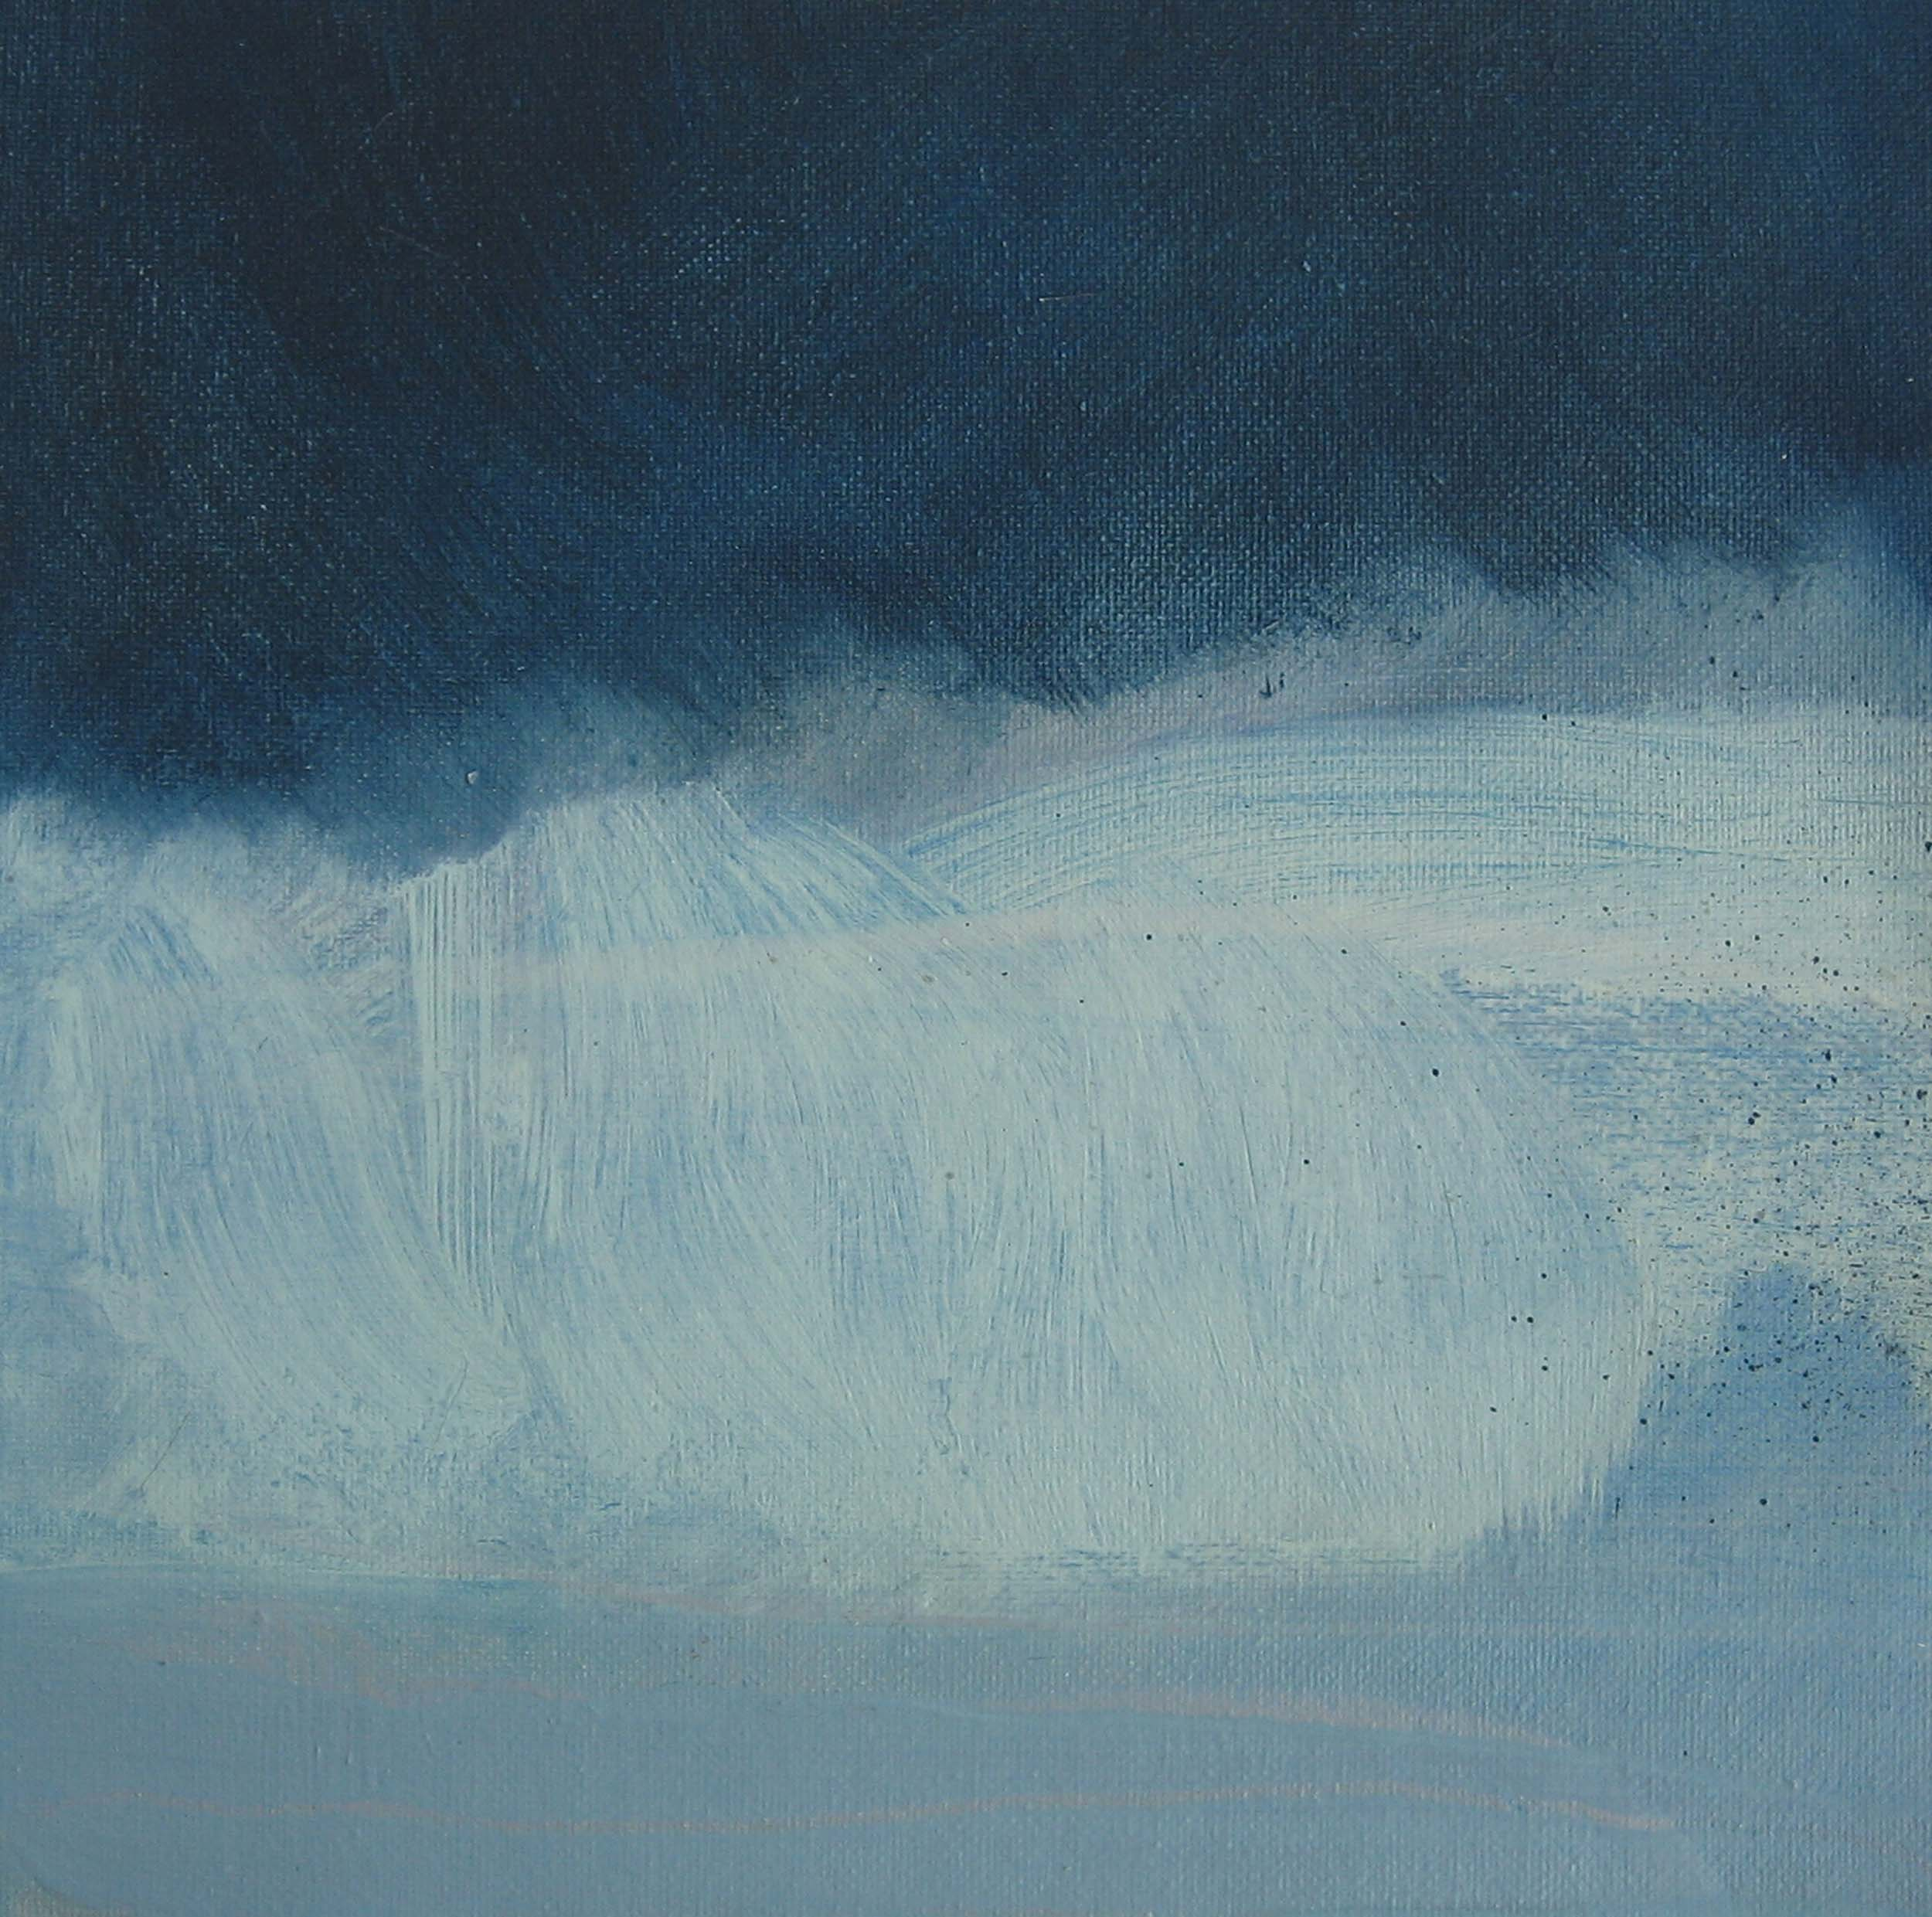 Leah Beggs 2008 - Swell -  Oil on Unstretched Canvas- 25 x 25 cm_sml.jpg